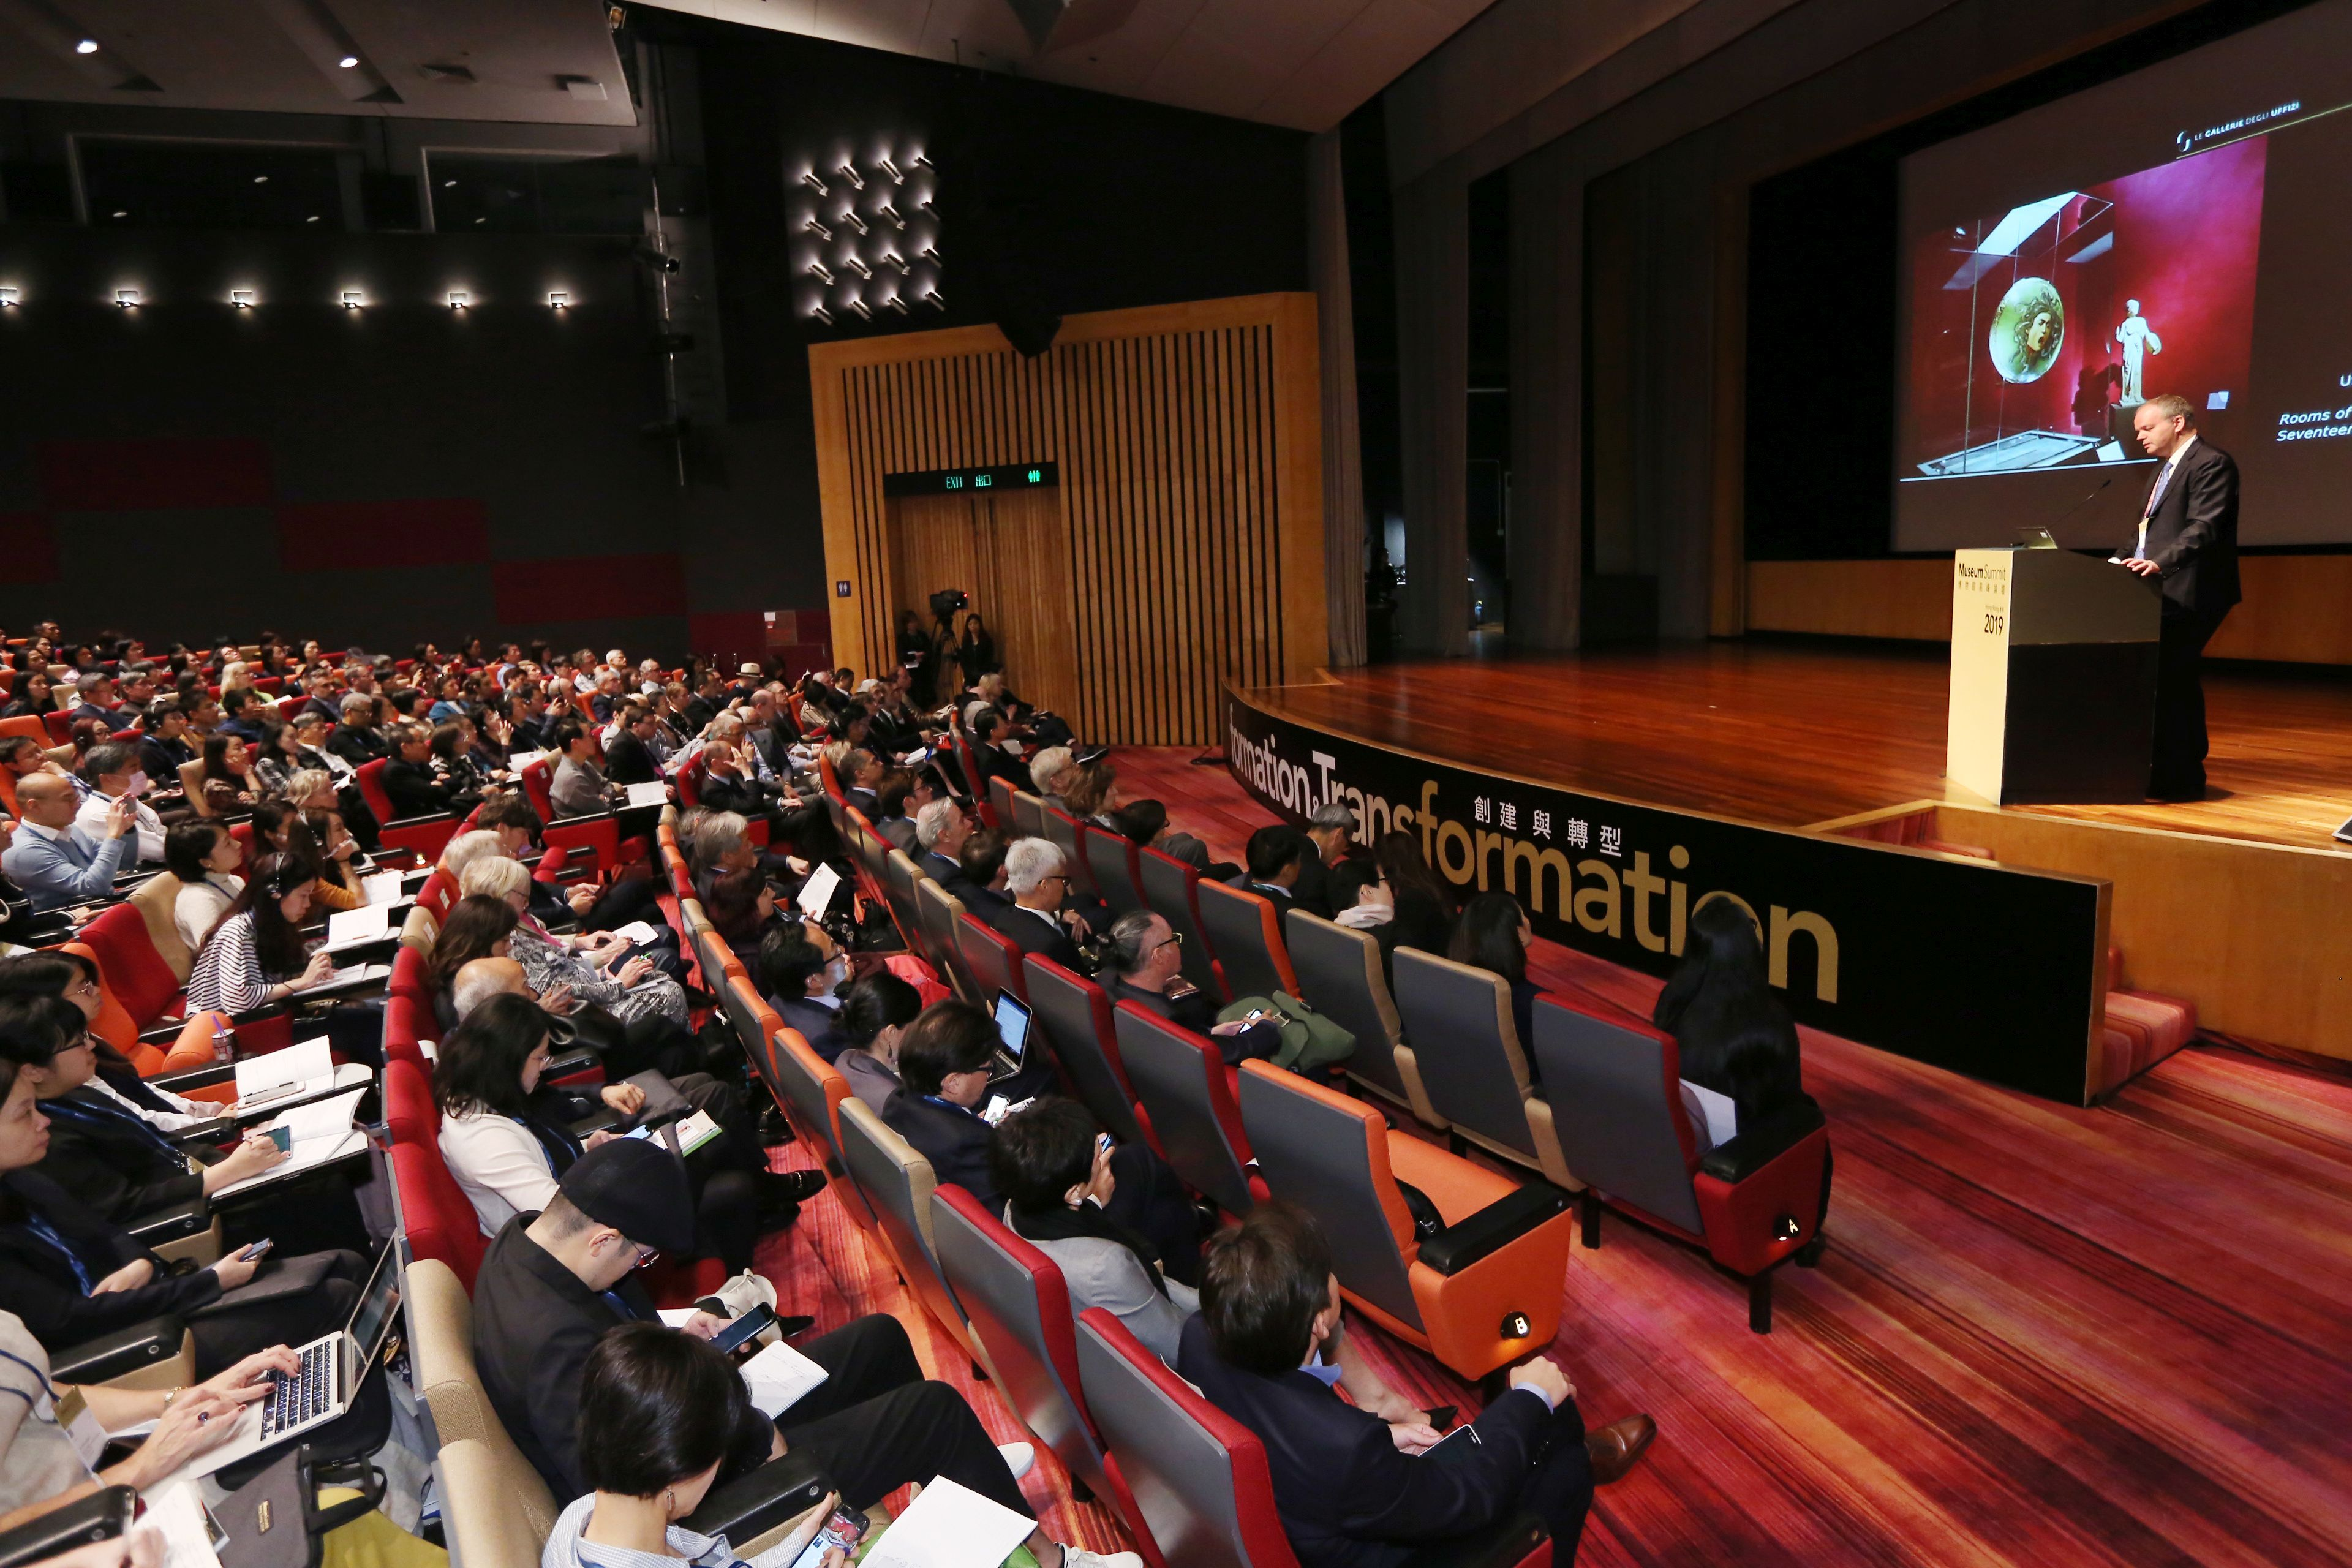 Audience filled presentation hall.  All images courtesy of the Leisure and Cultural Services Department, Hong Kong.